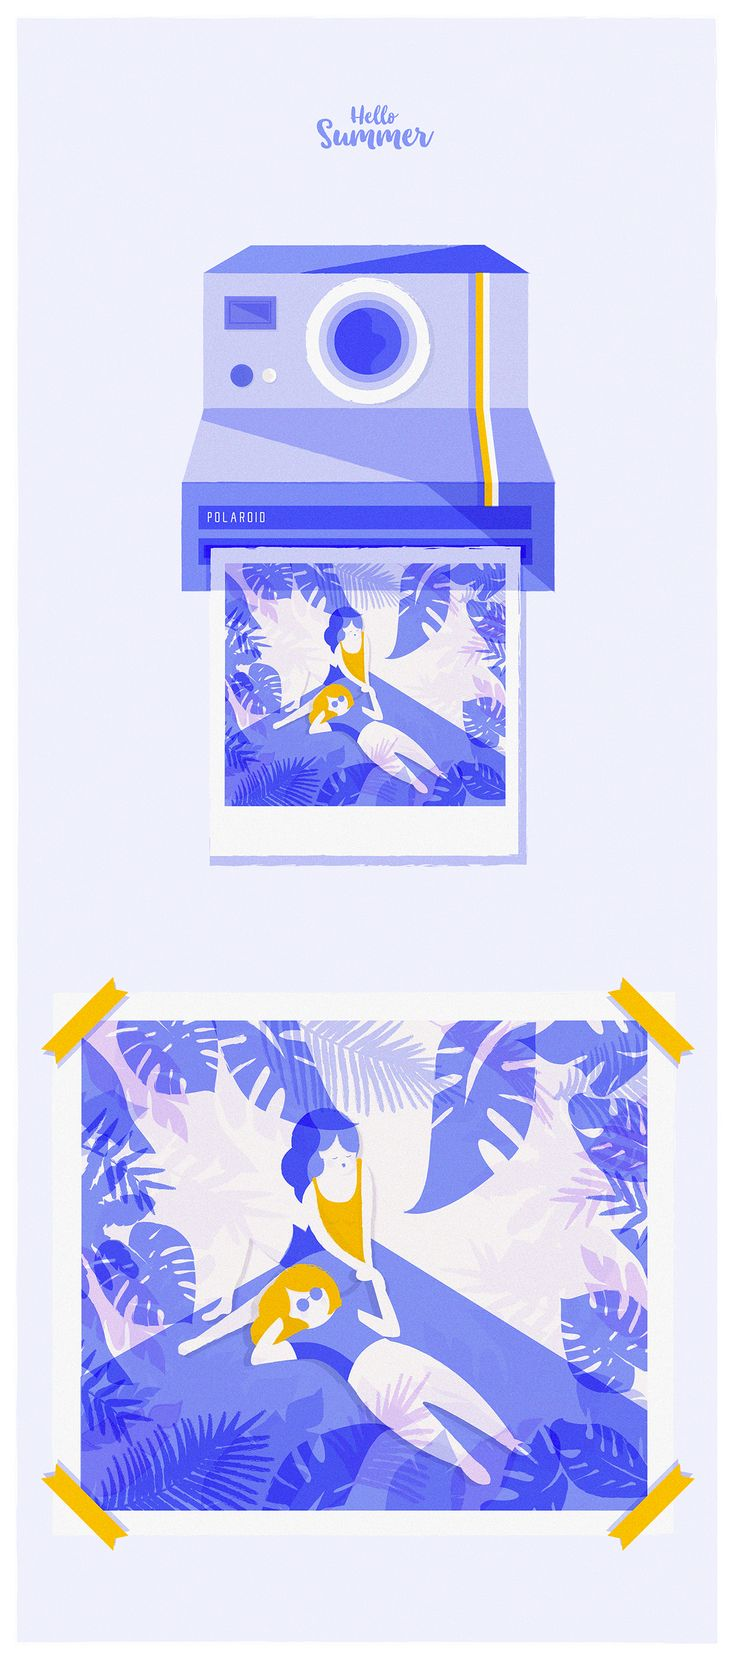 Hello Summer on Behance